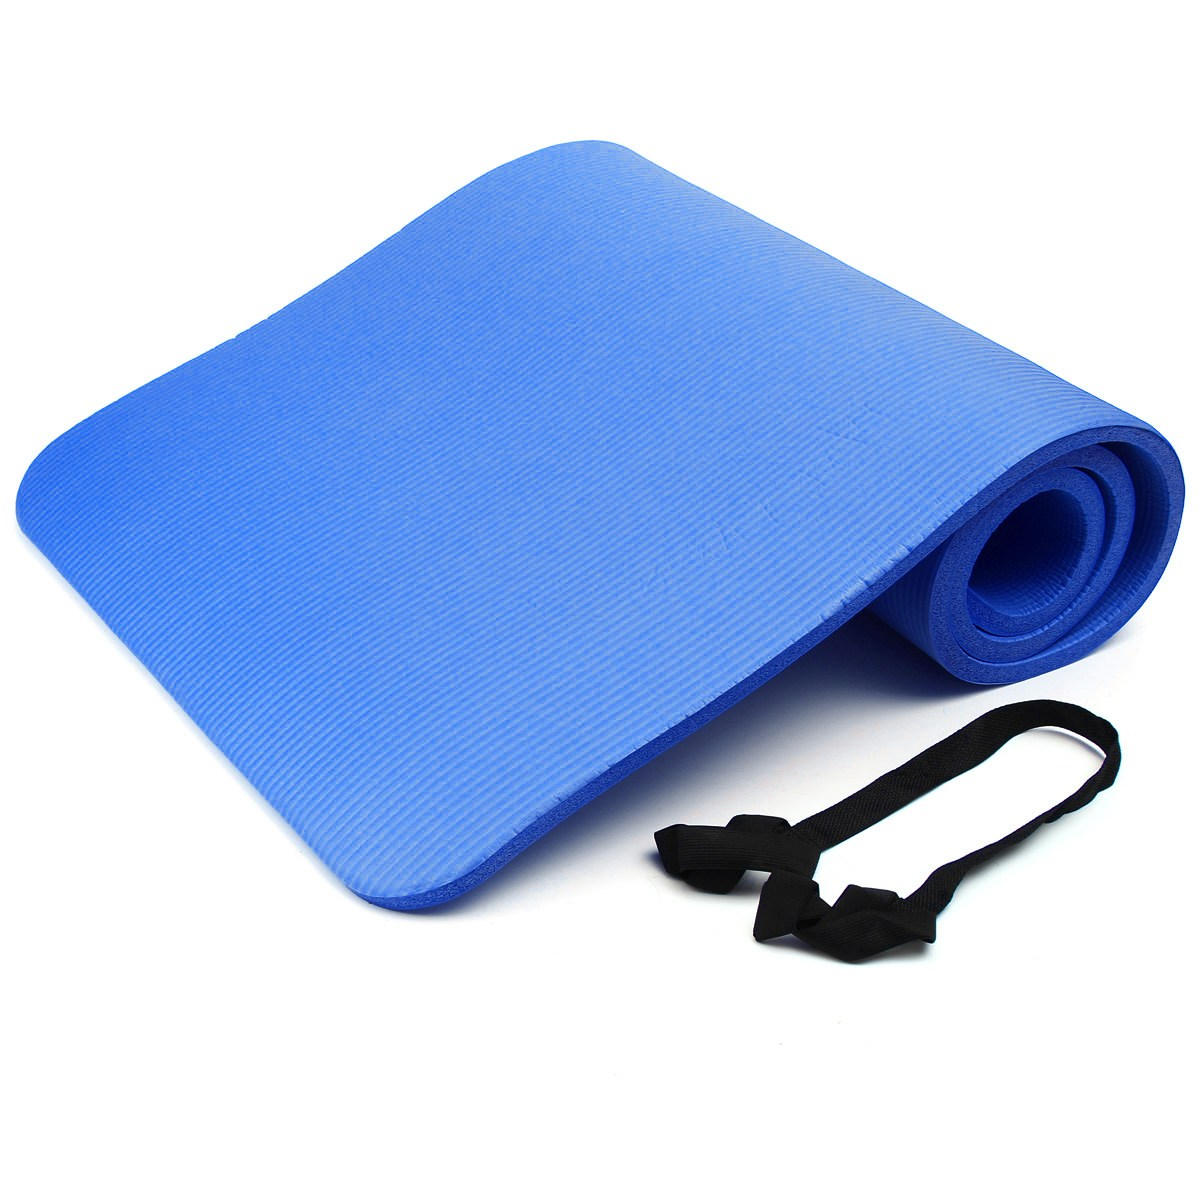 15mm Thick NBR Foam Yoga Mat Soft Yoga Pads Sports Training Exercise non-slip Gym Mat 183 X 61cm for Fitness Body Building new yoga pilates exercise high density eva foam massage roller fitness home gym massage